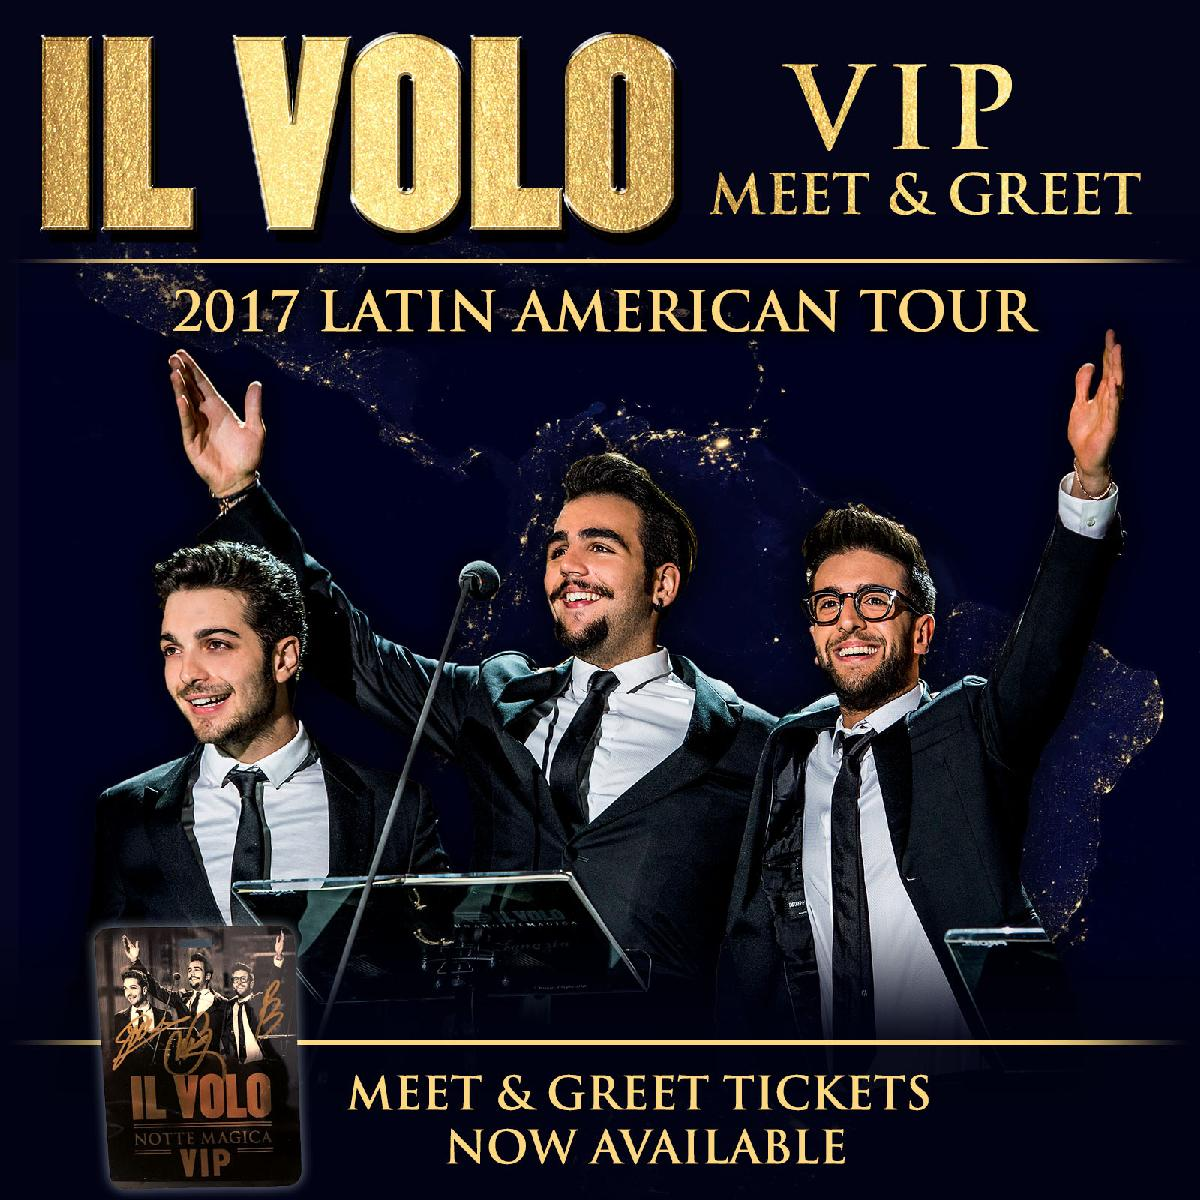 Il volo vip meet greet guadalajara omg vip performing artists click on artist for reviews and previews m4hsunfo